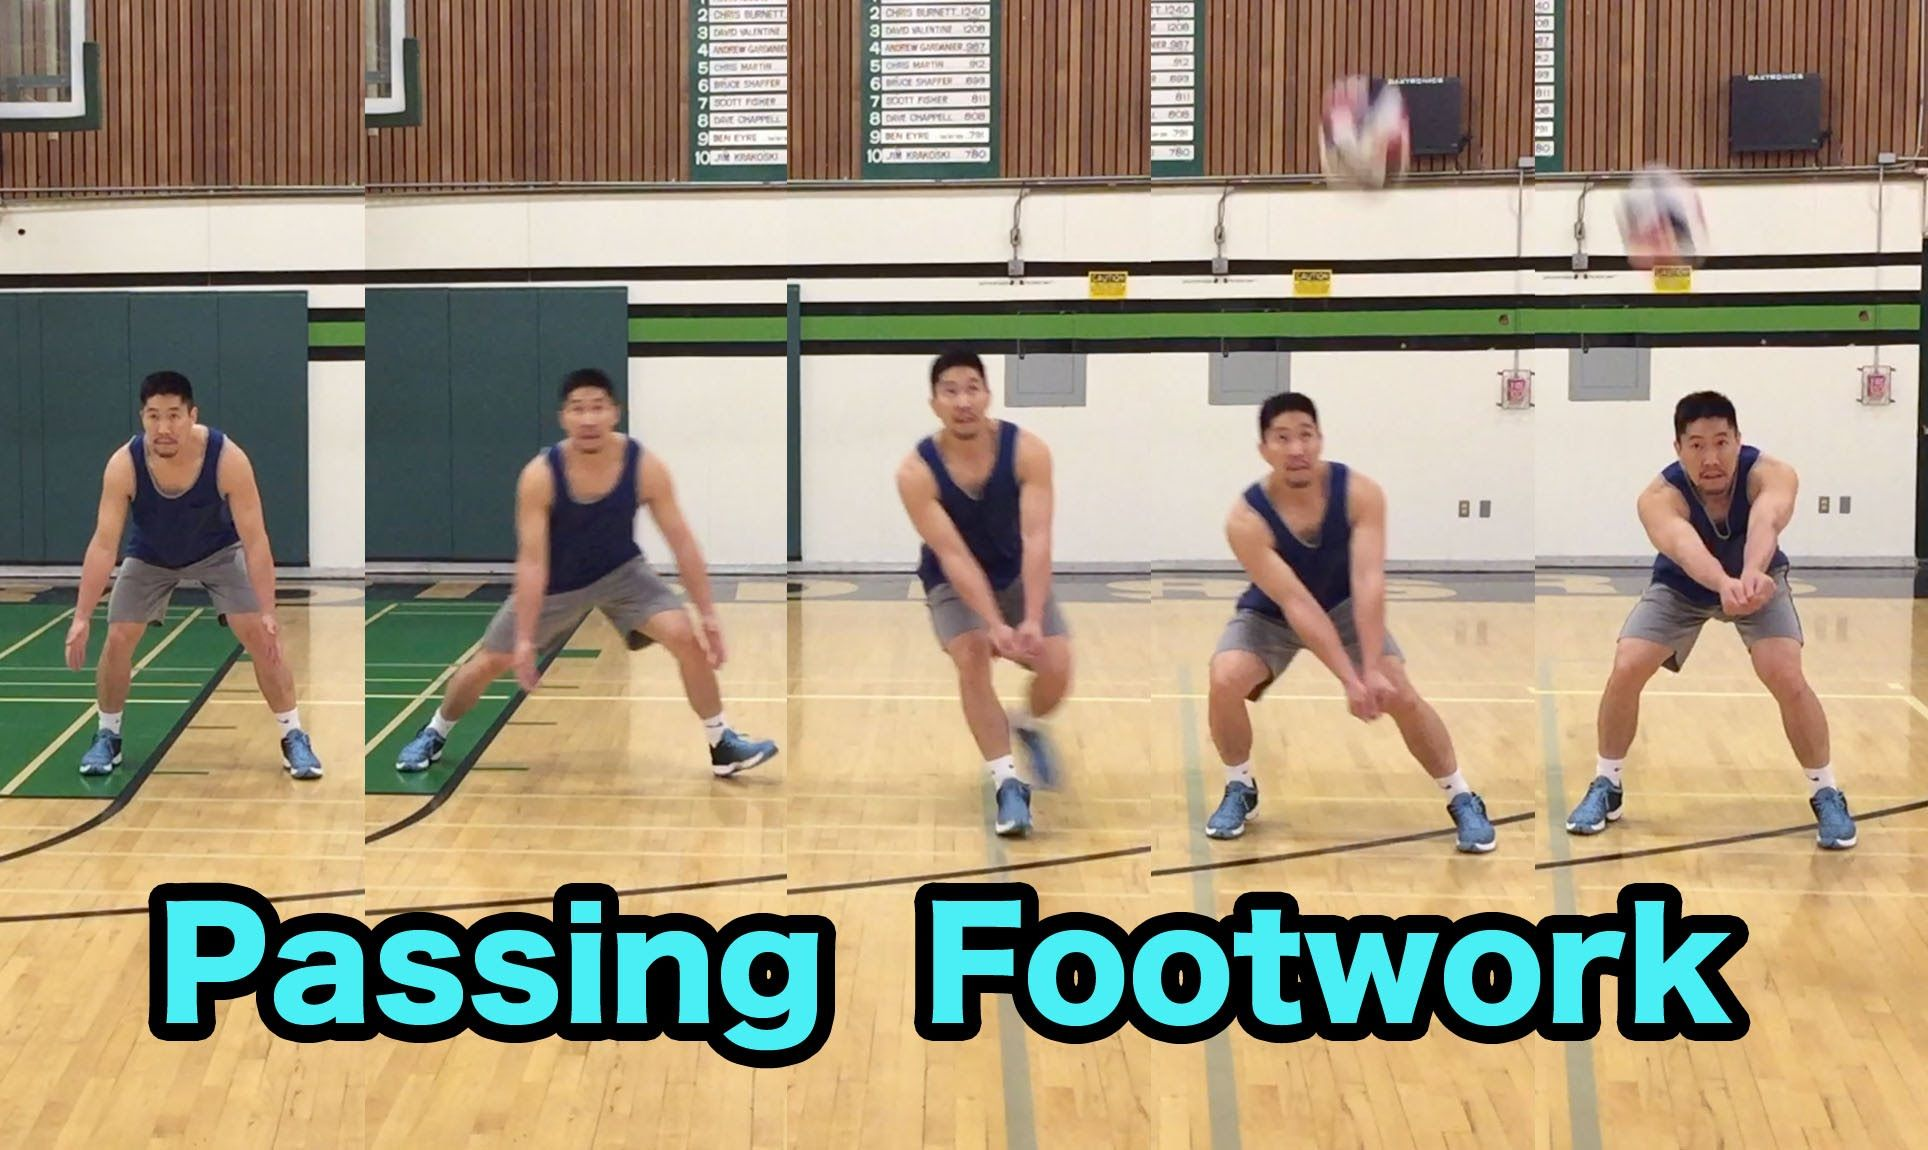 Passing Footwork How To Pass A Volleyball Tutorial Part 5 6 Volleyball Workouts Volleyball Practice Coaching Volleyball